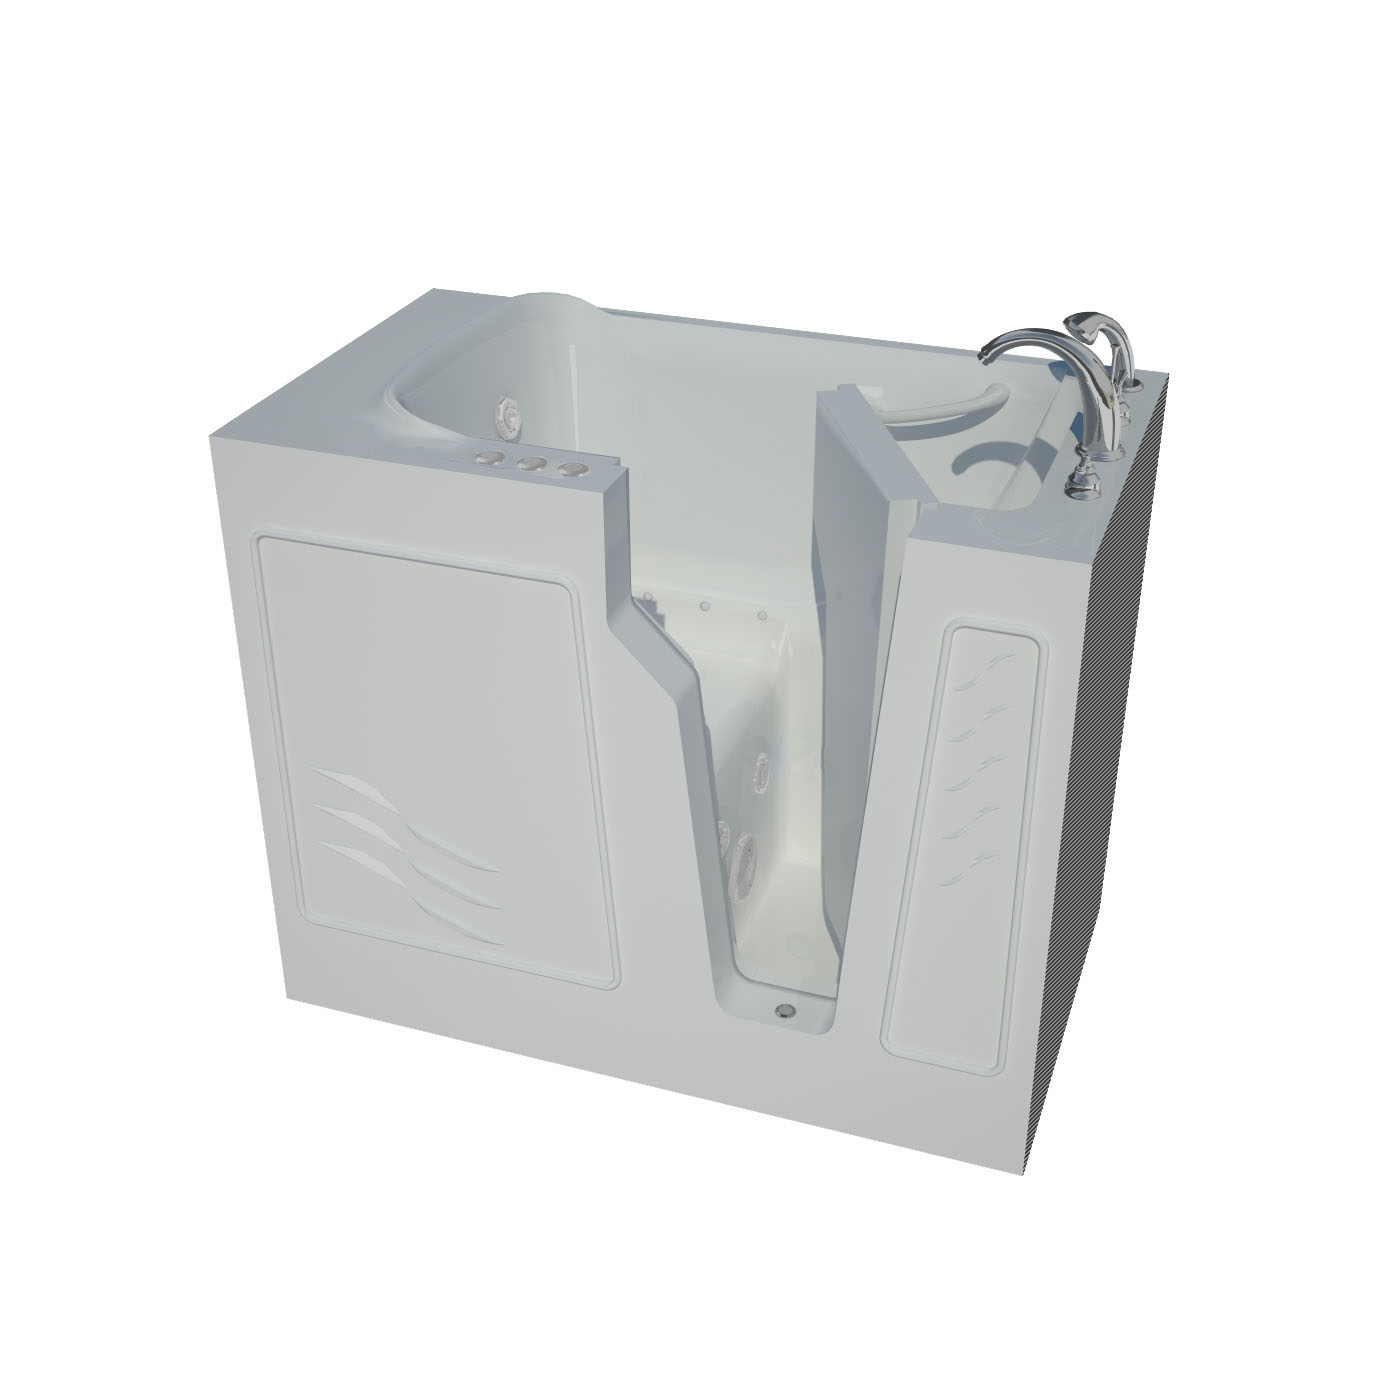 26 x 46 Right Drain Whirlpool & Air Jetted Walk-In Bathtub in White